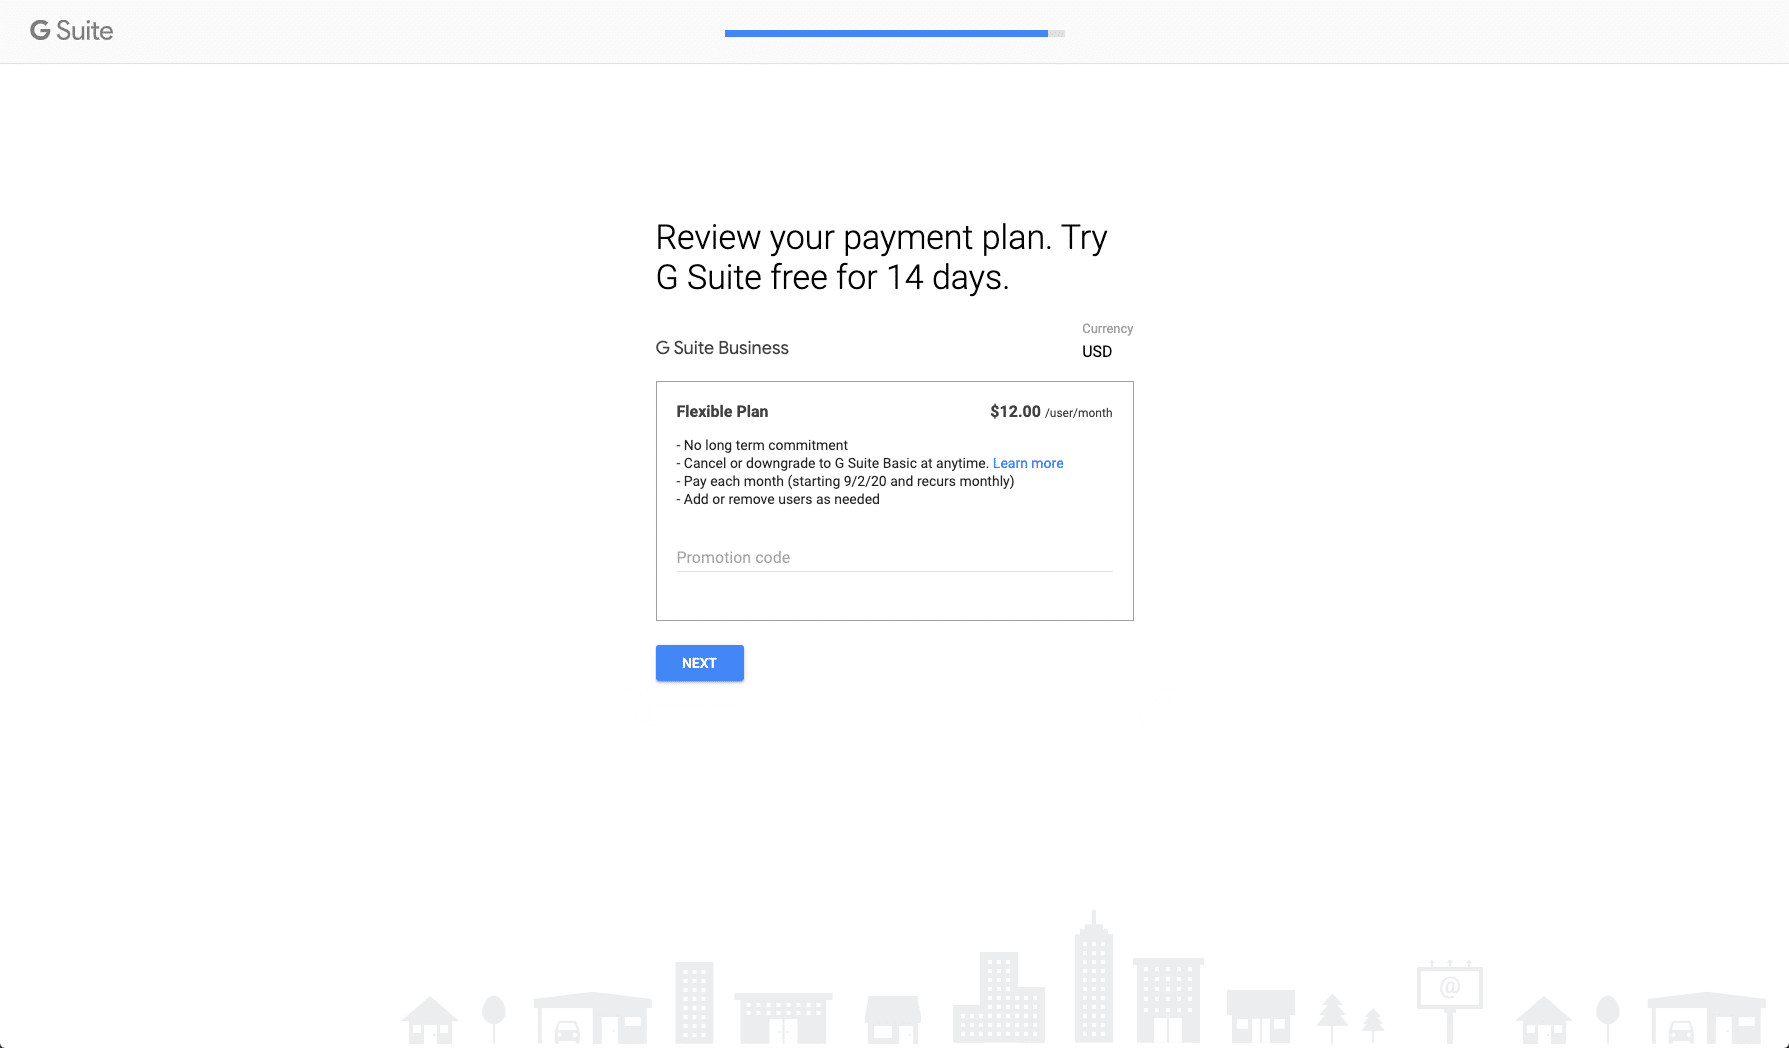 Reviewing payment plan on G Suite